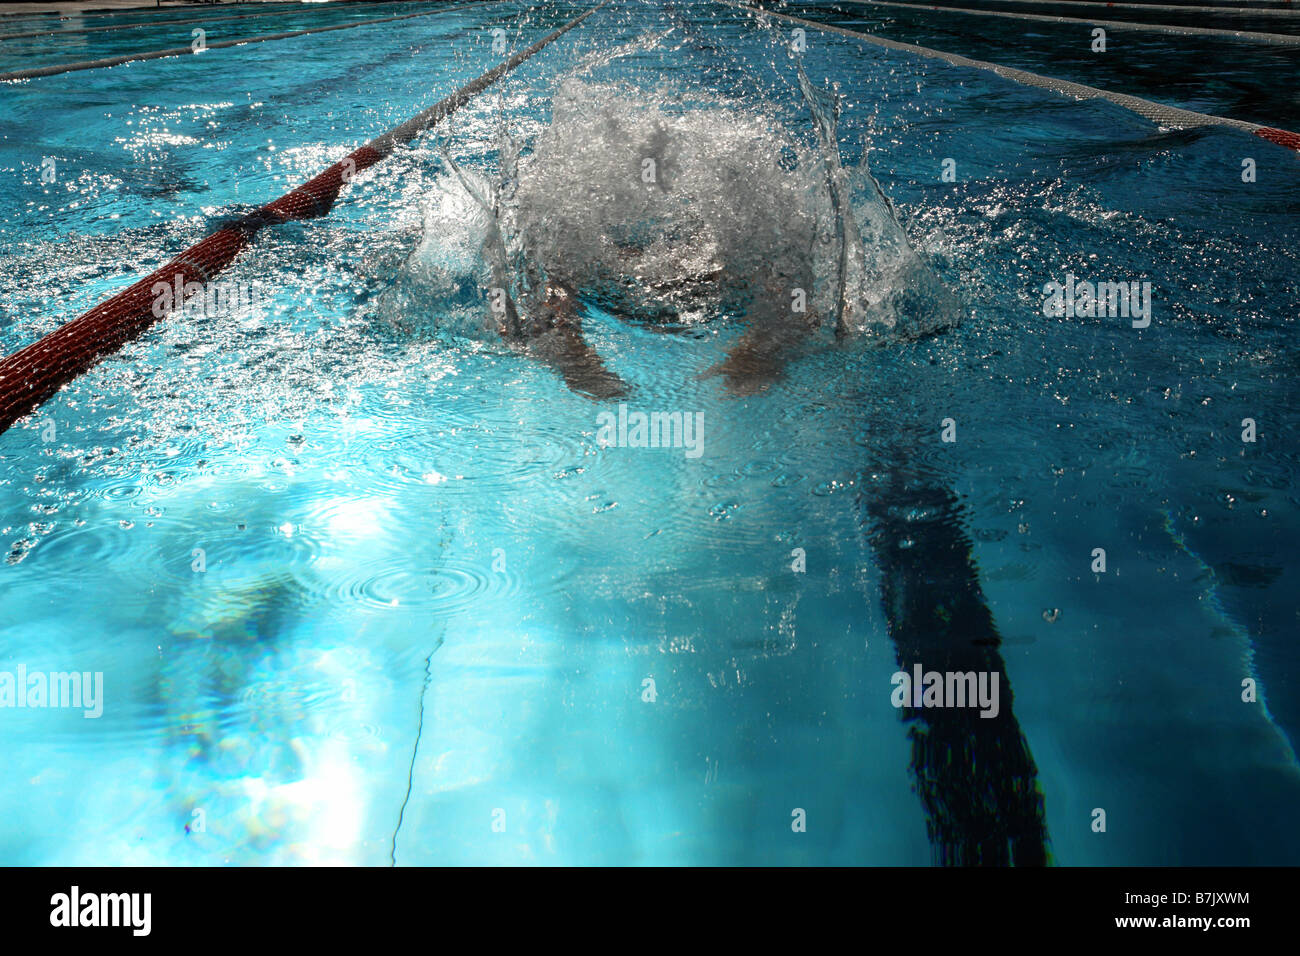 Swimmer in a swimming pool - Stock Image